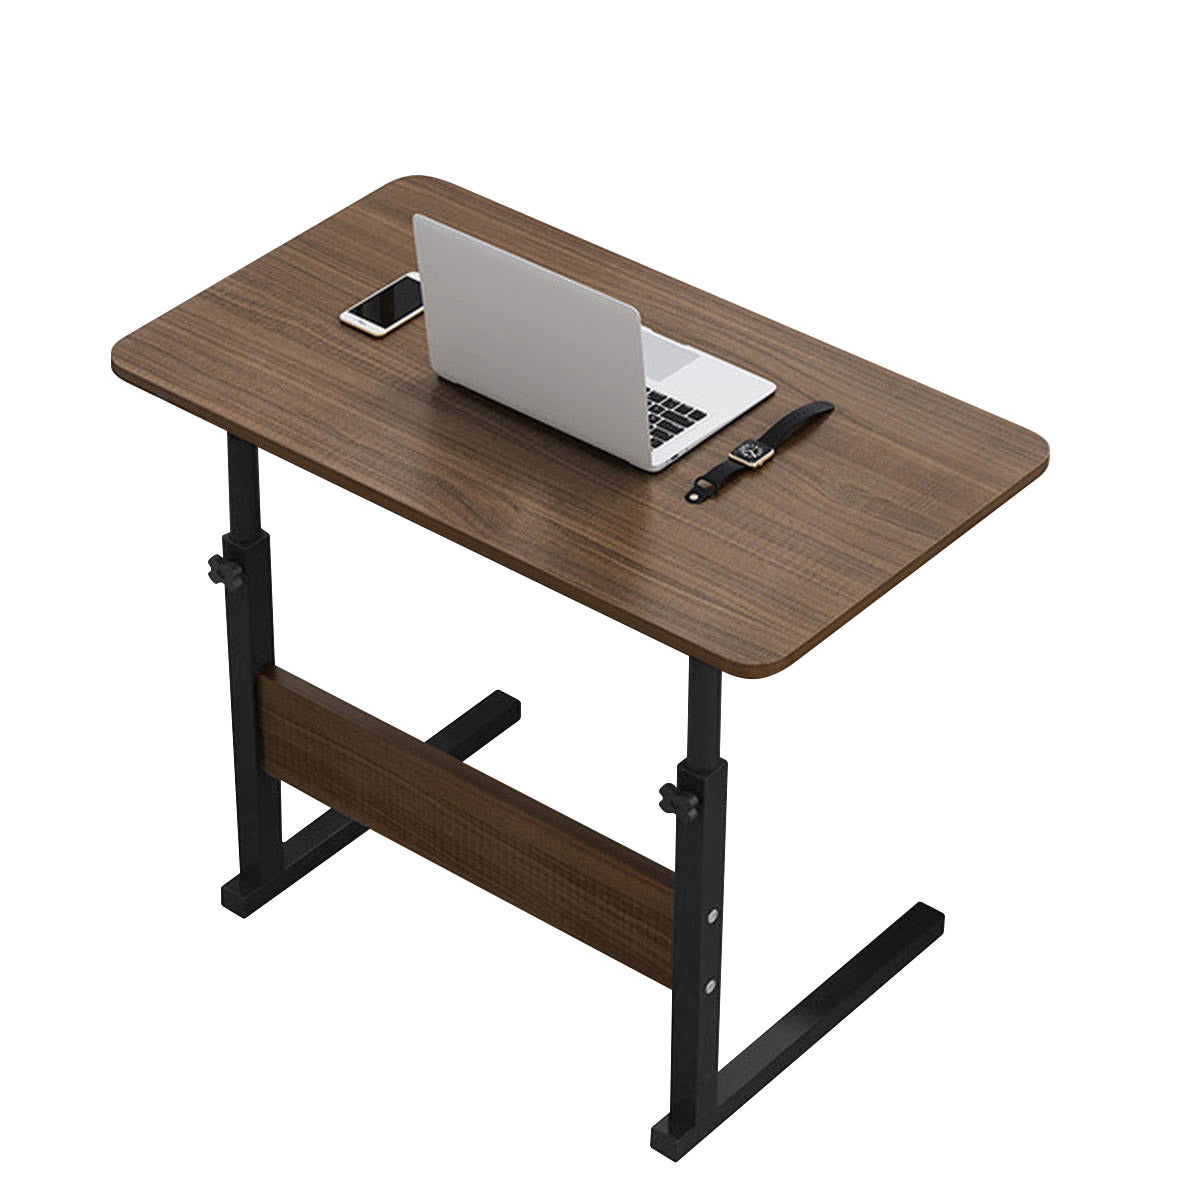 Multifunctional Movable Bedside Laptop Desk Wooden Computer Table Study Table Computer Stand